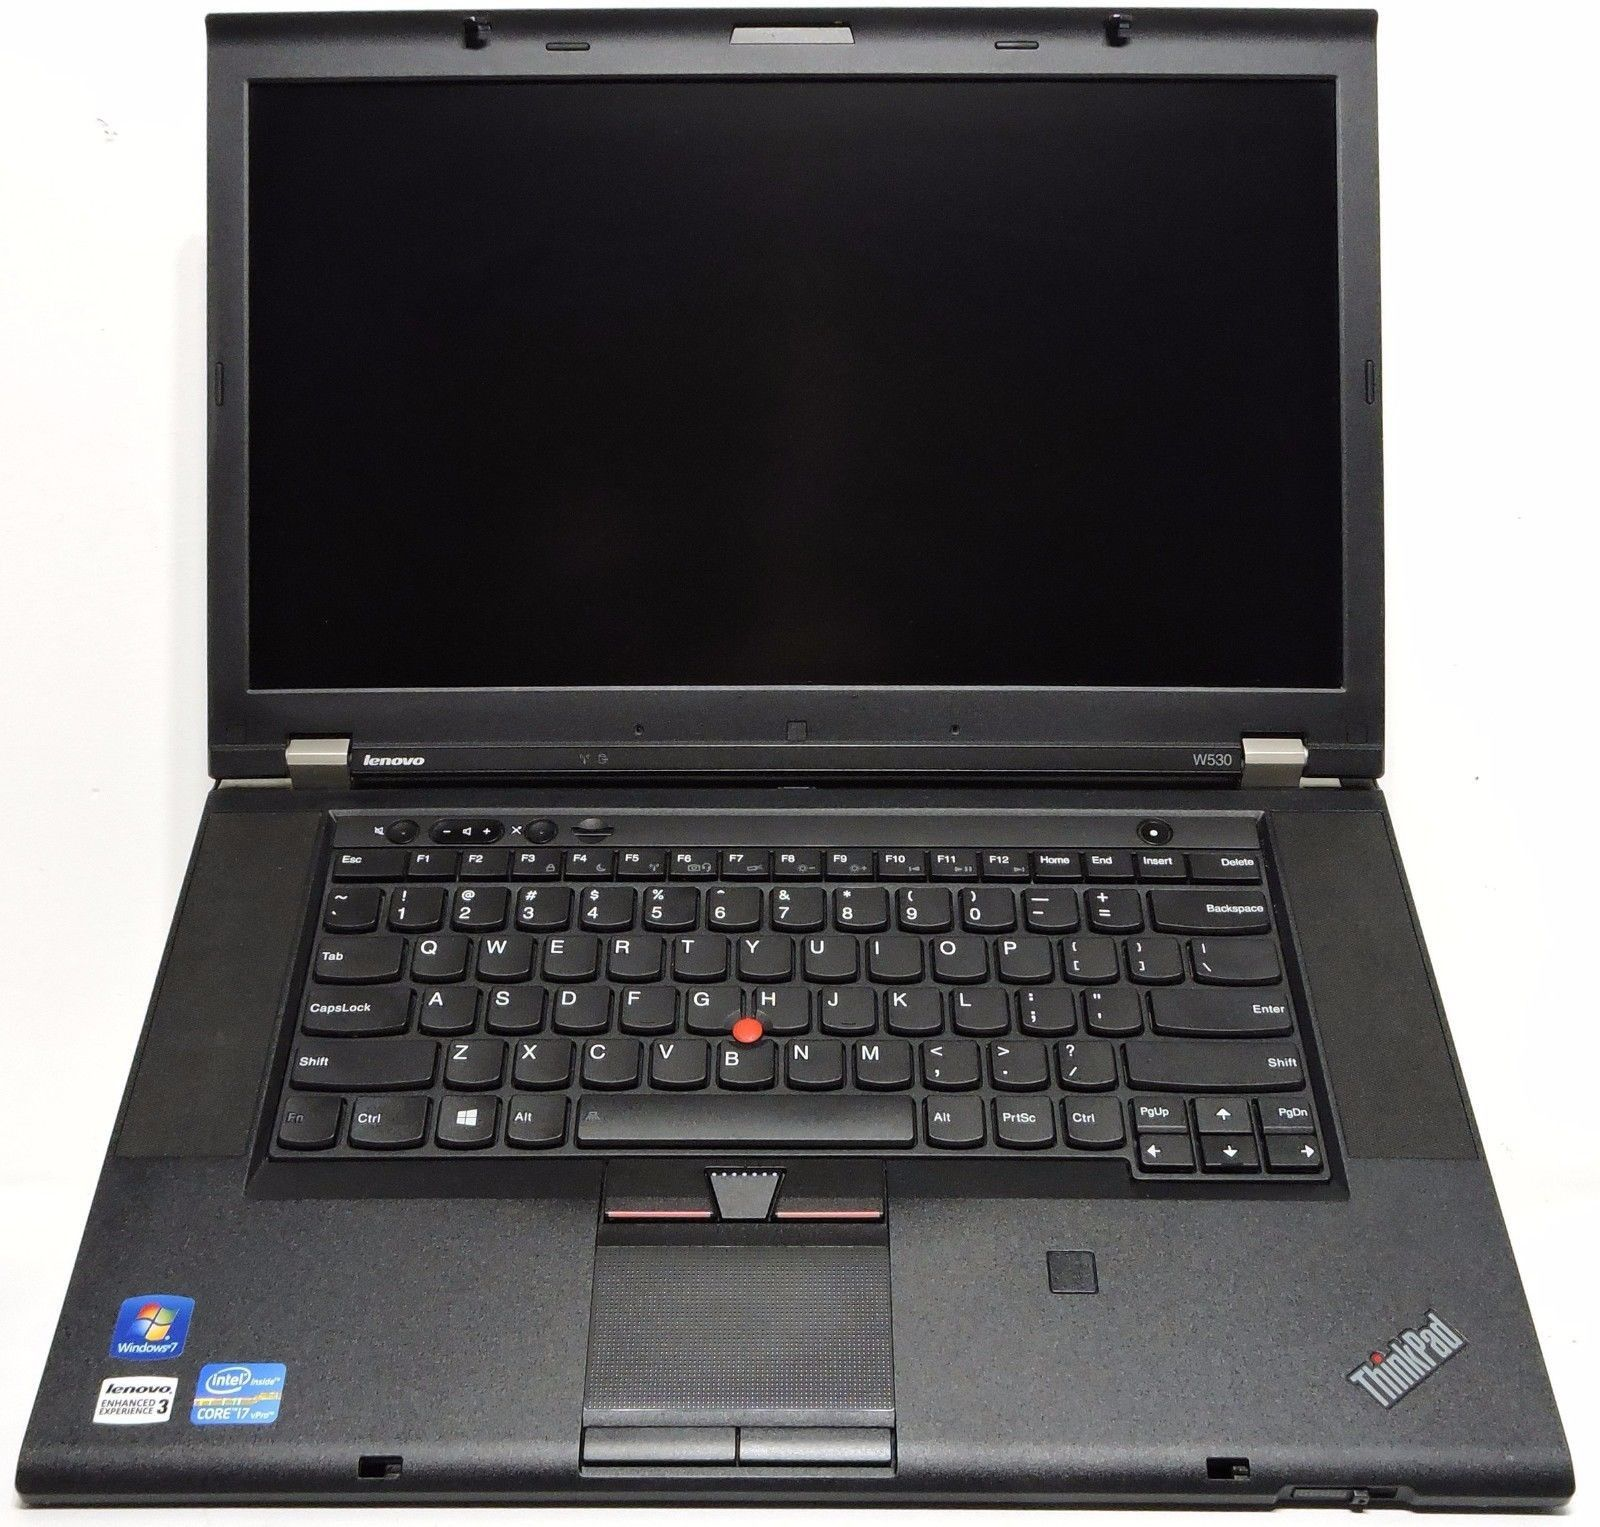 Lenovo ThinkPad W530 Laptop PC Intel Core i7 NVIDIA Quadro 16GB DDR3 1080P WiFi